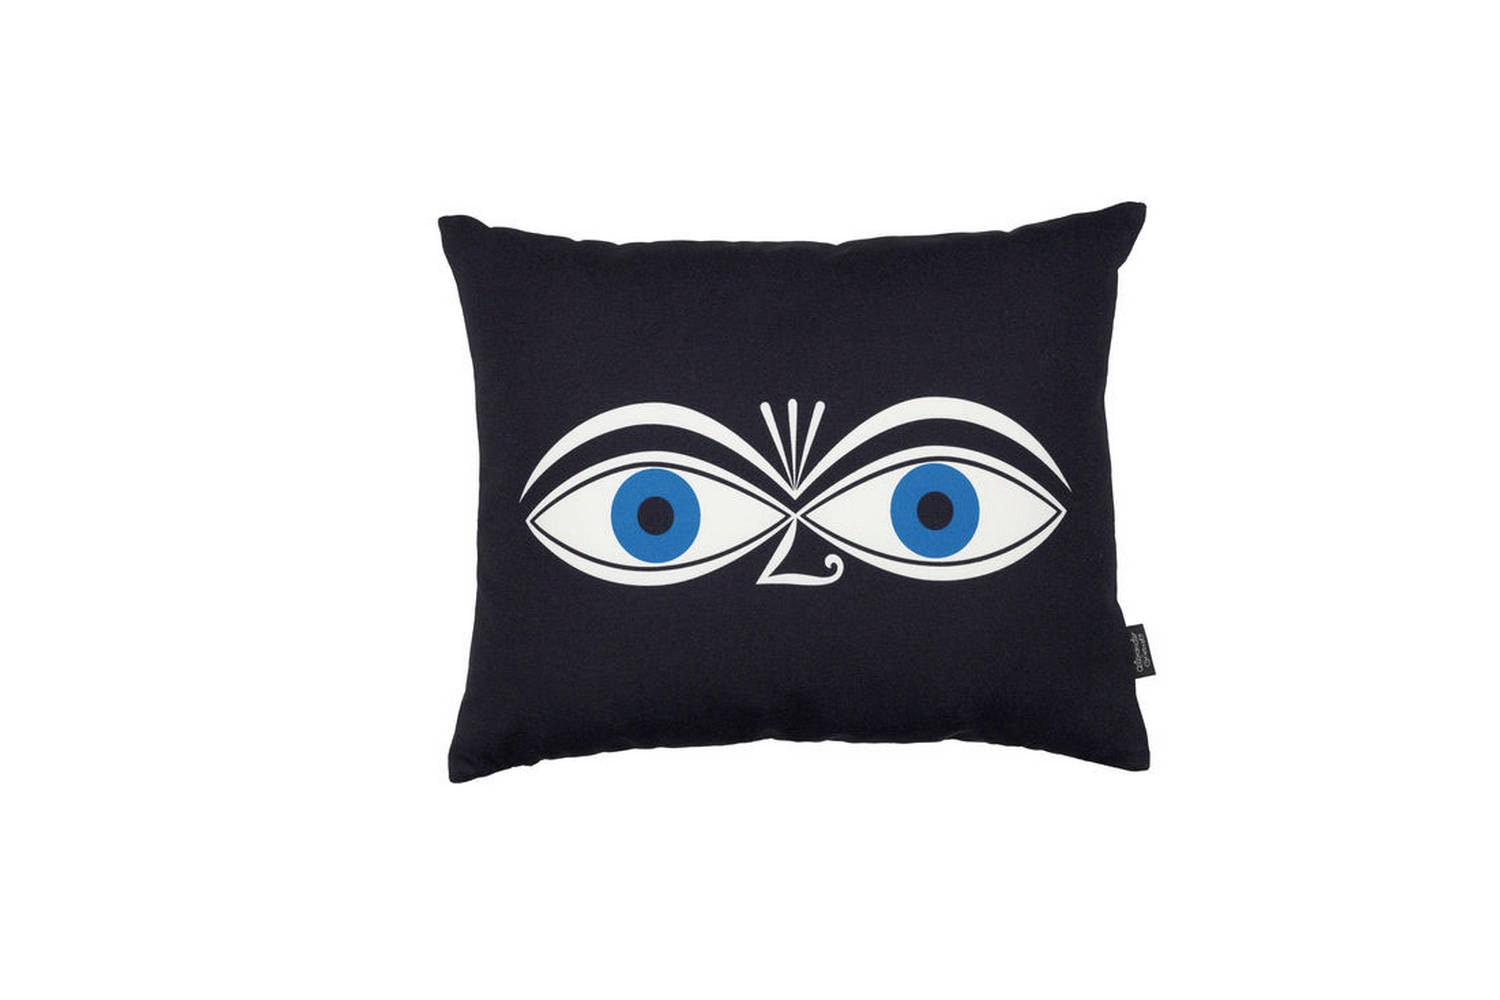 Graphic Print Pillows by Alexander Girard for Vitra